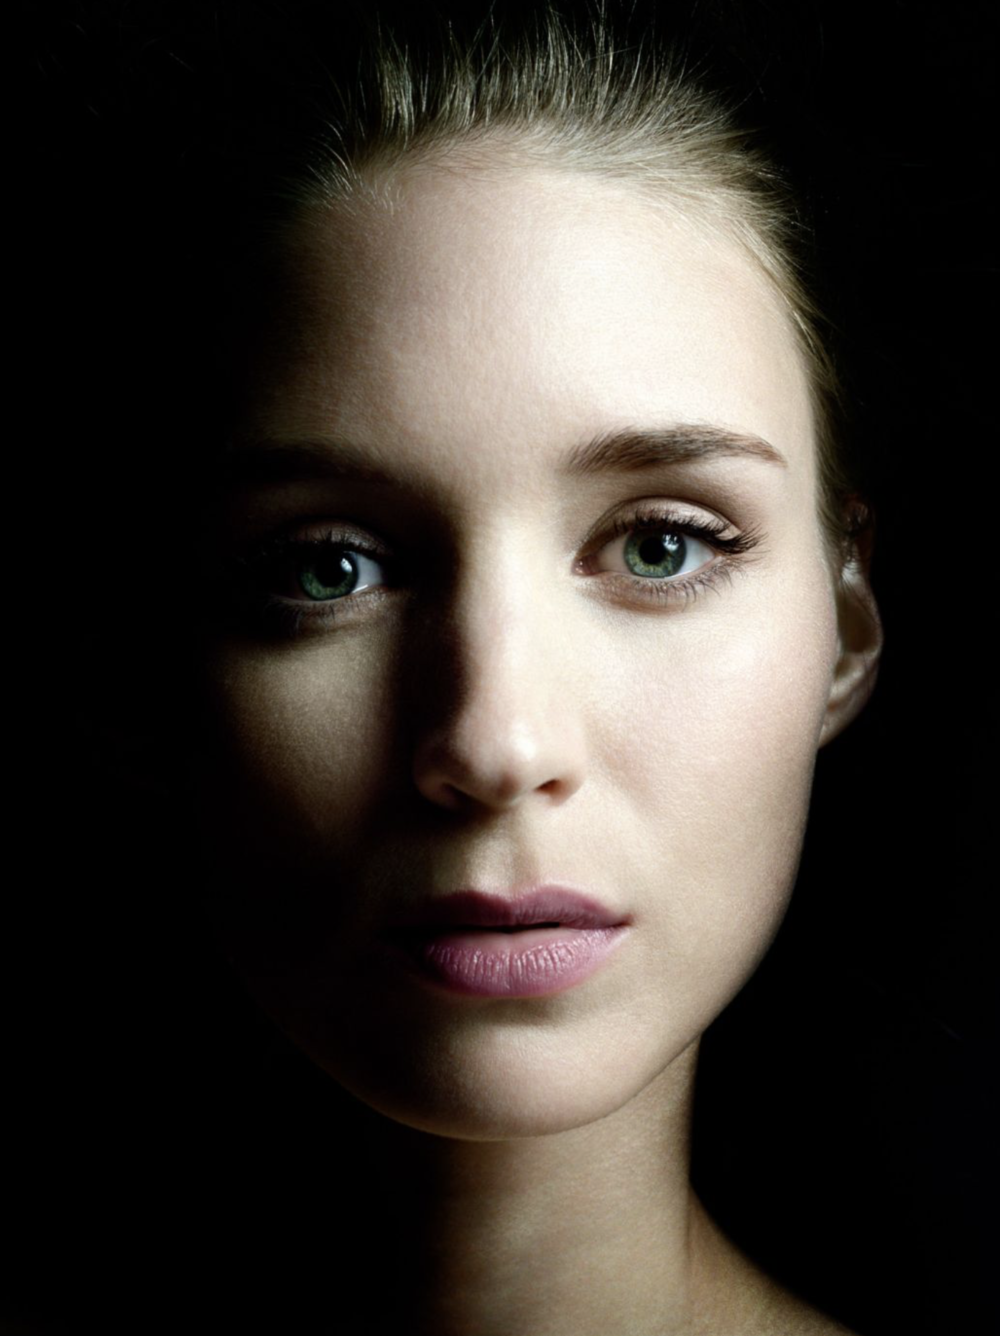 Renowned portrait photographer and photo journalist Platon. Actress Rooney Mara shown above.